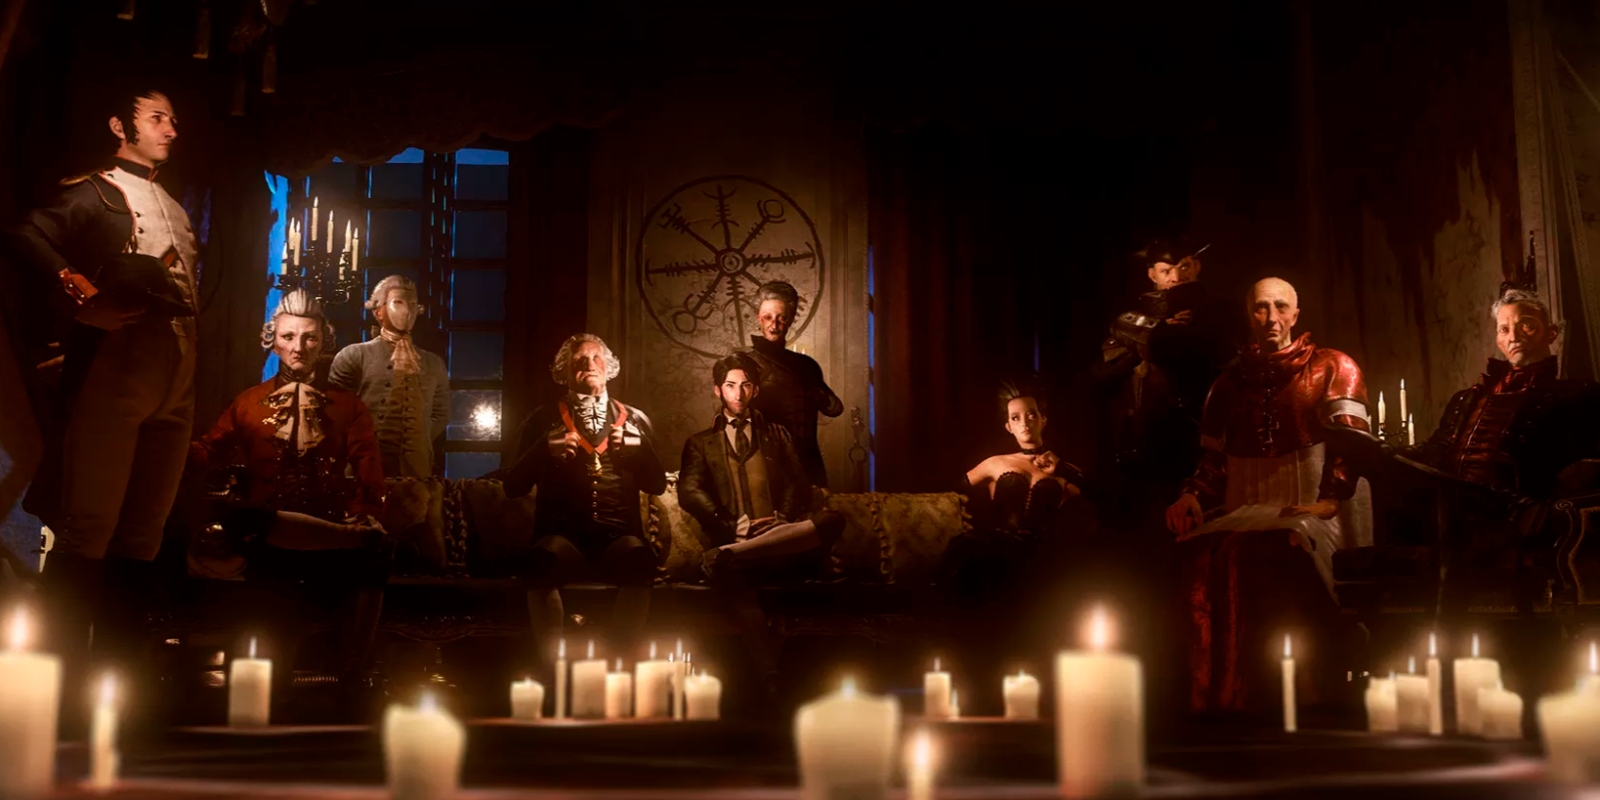 The Council Is a Great Historical Mystery Adventure | CBR